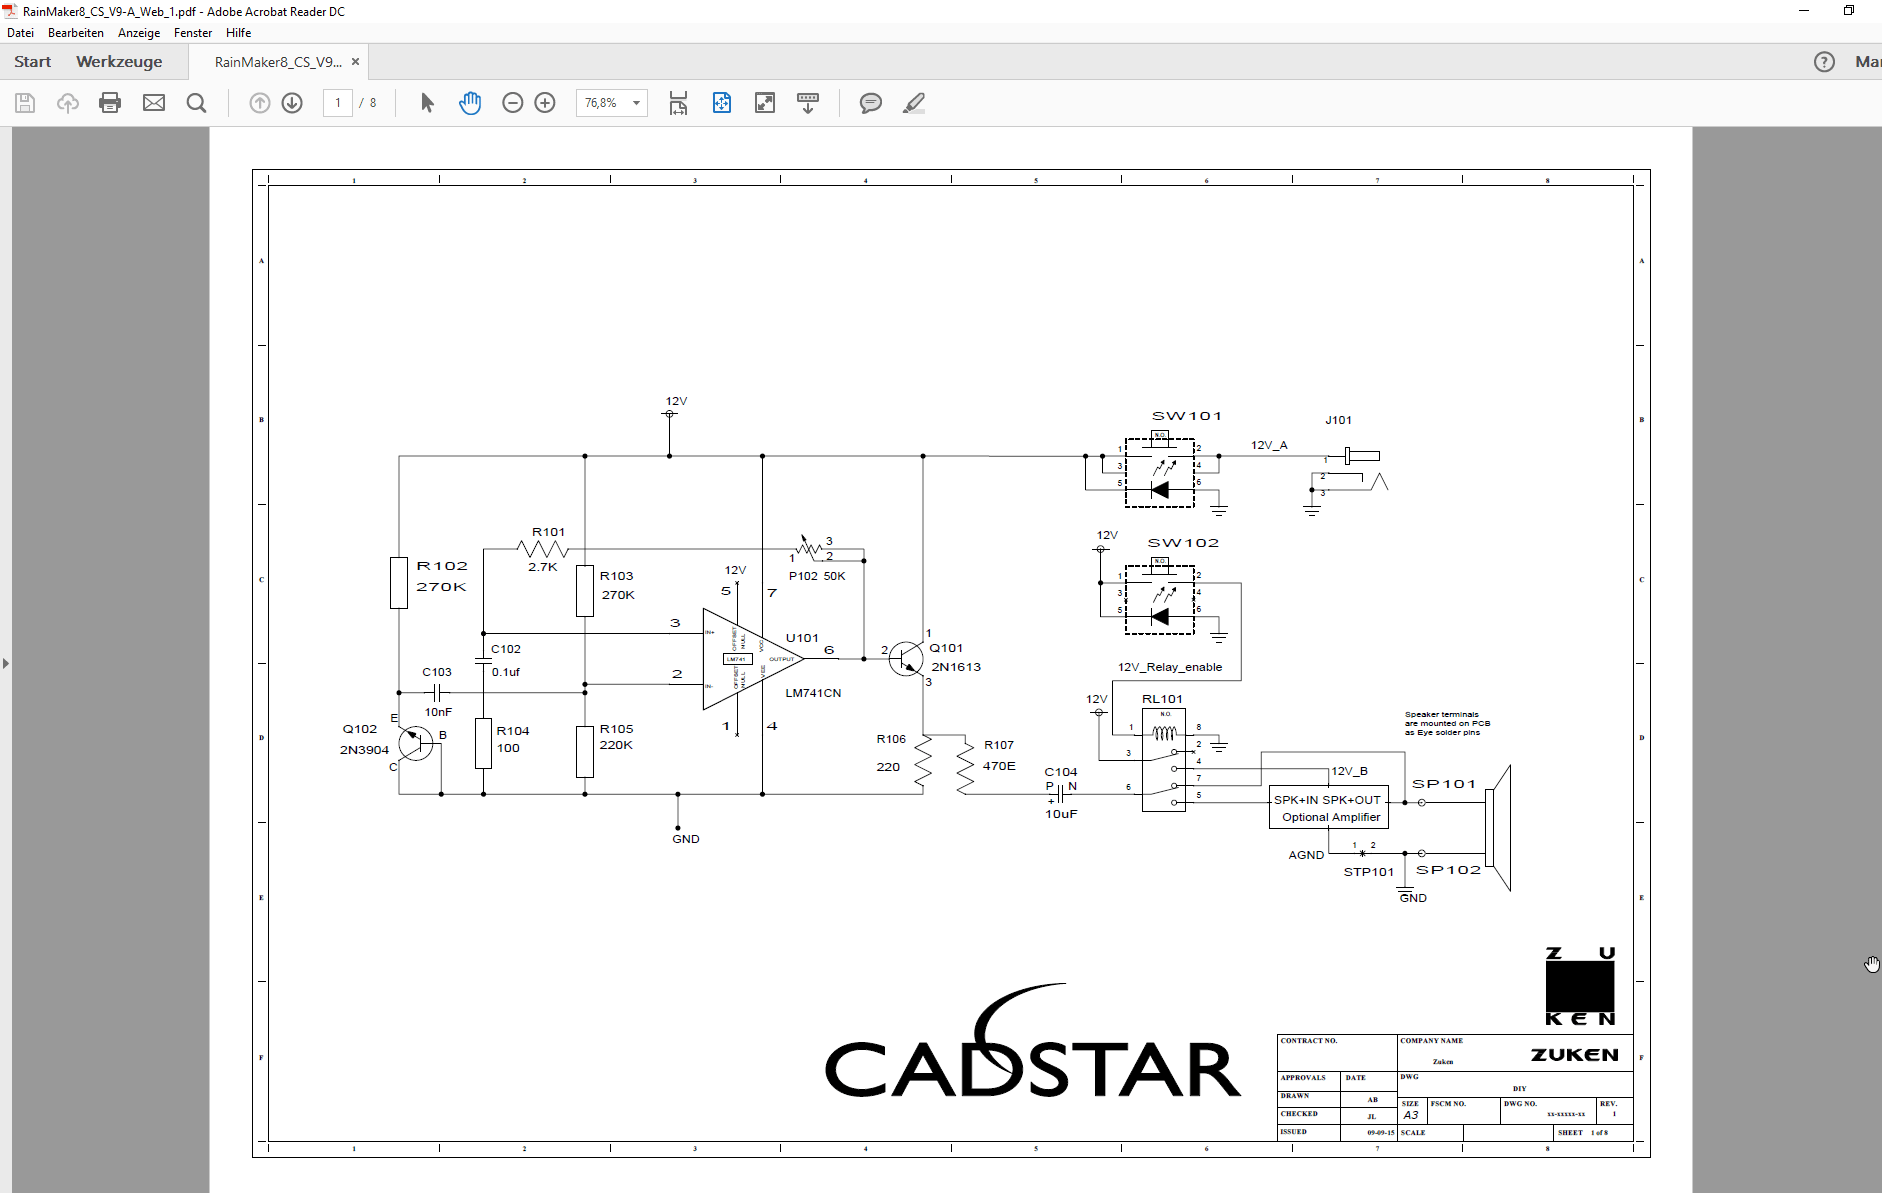 pcb design software cadstar schematics variants Bestueckungs Variante A SCM ohne non fitted PDF